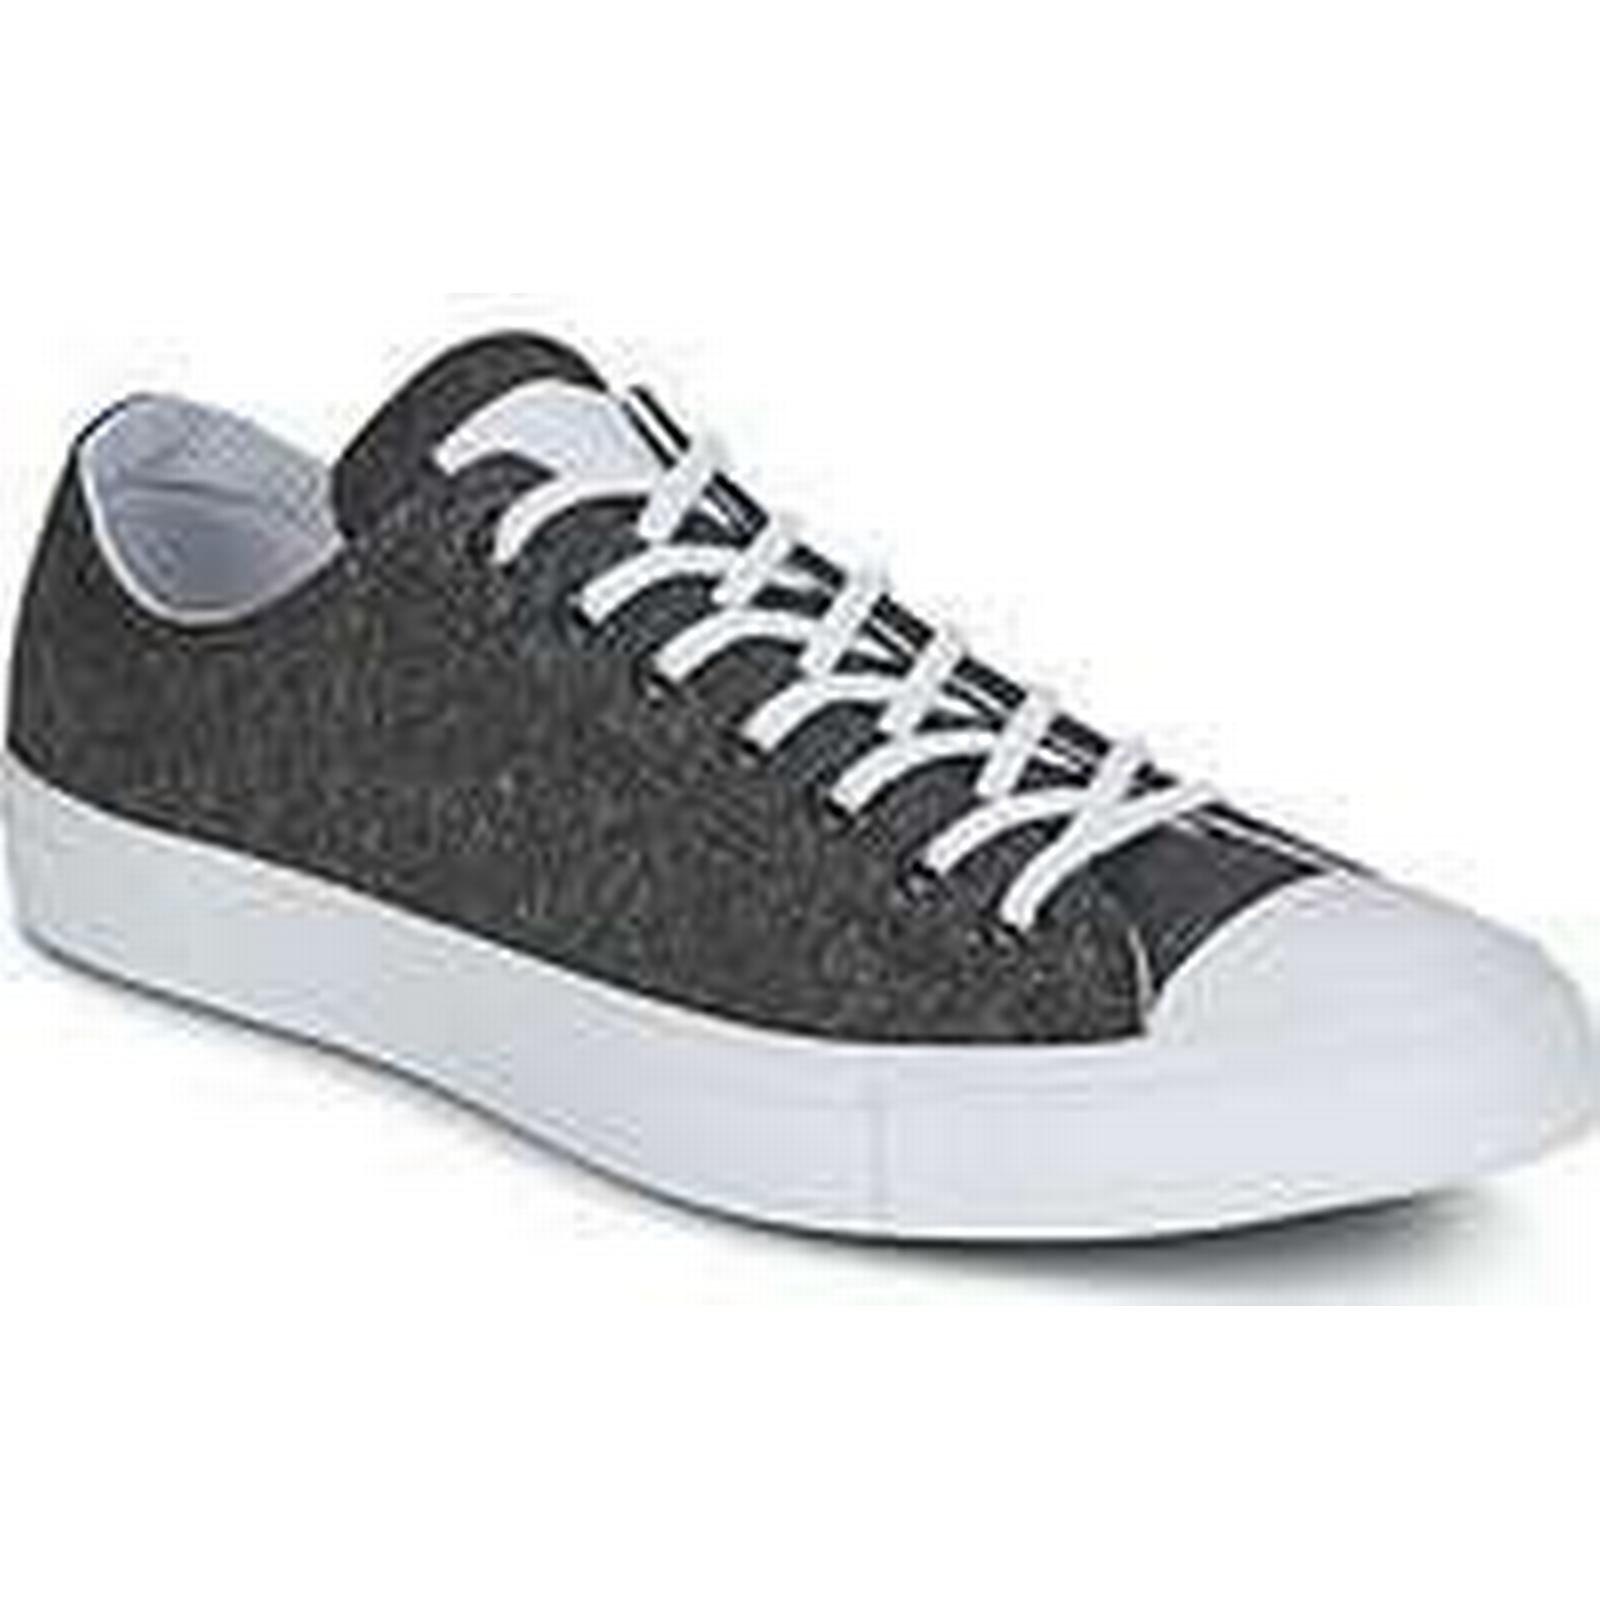 Spartoo.co.uk Star Converse Chuck Taylor All Star Spartoo.co.uk Ox Essential Terry men's Shoes (Trainers) in Grey 7c4a62